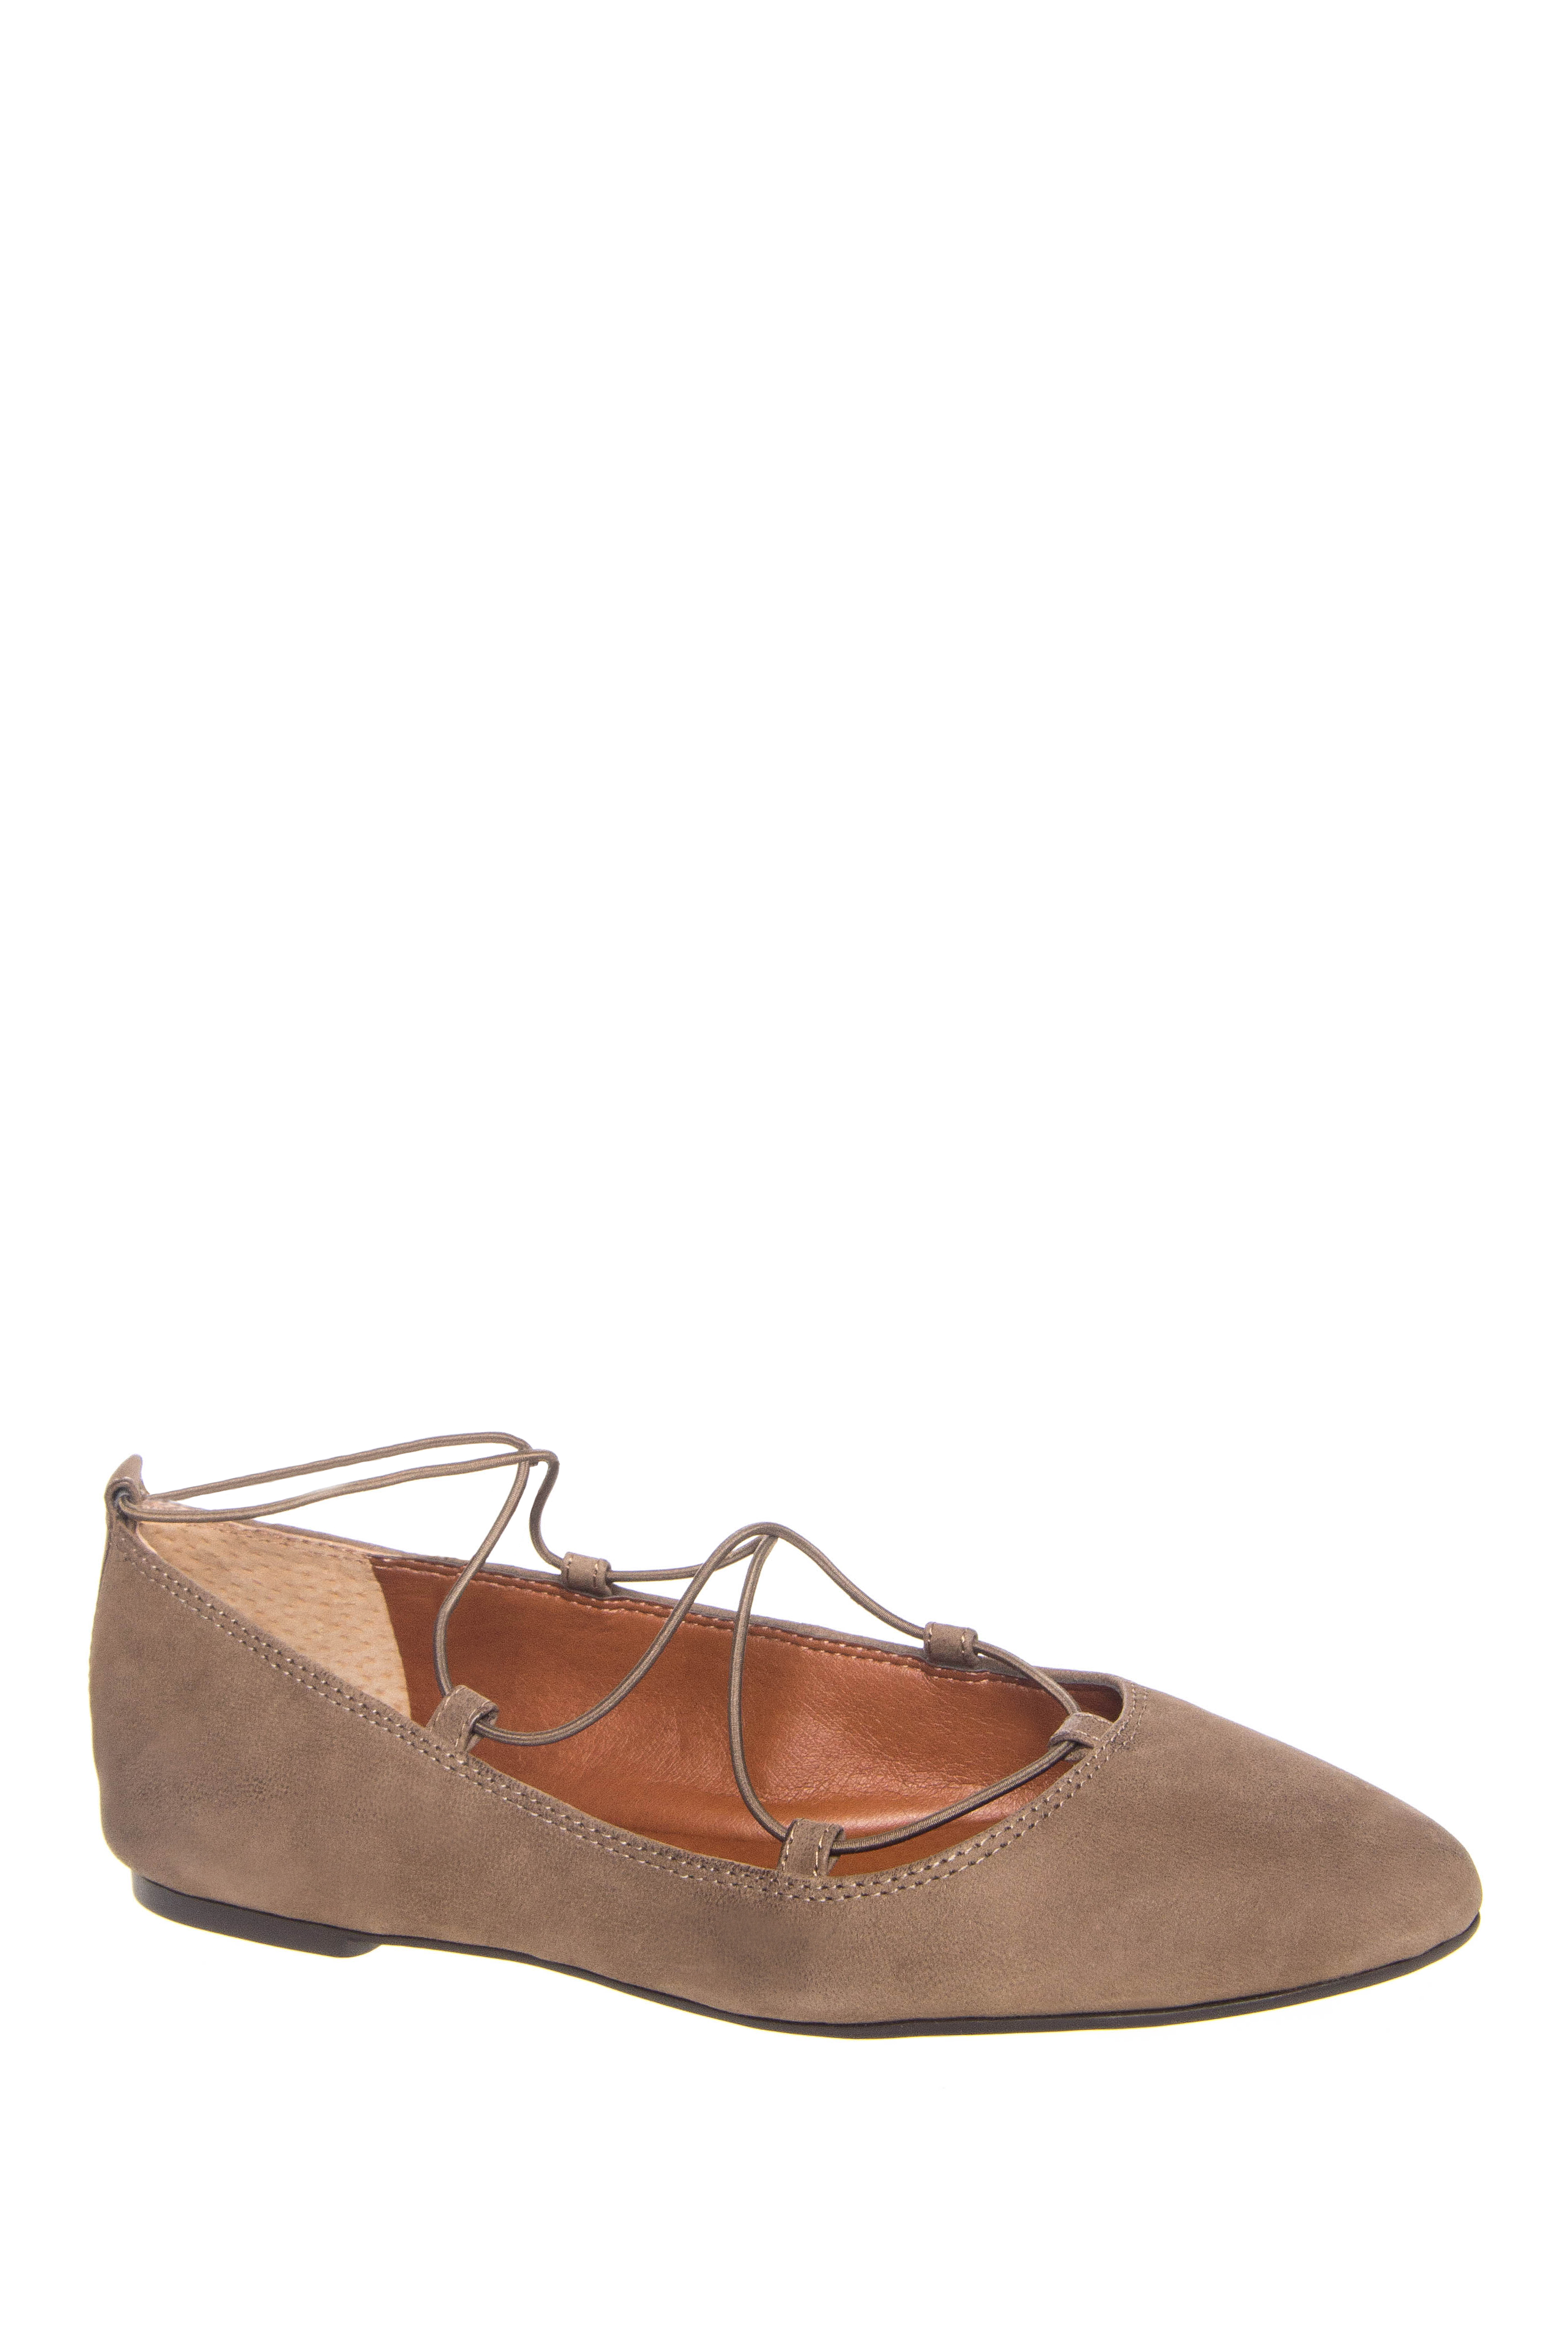 Lucky Aviee Lace Up Flats - Brindle